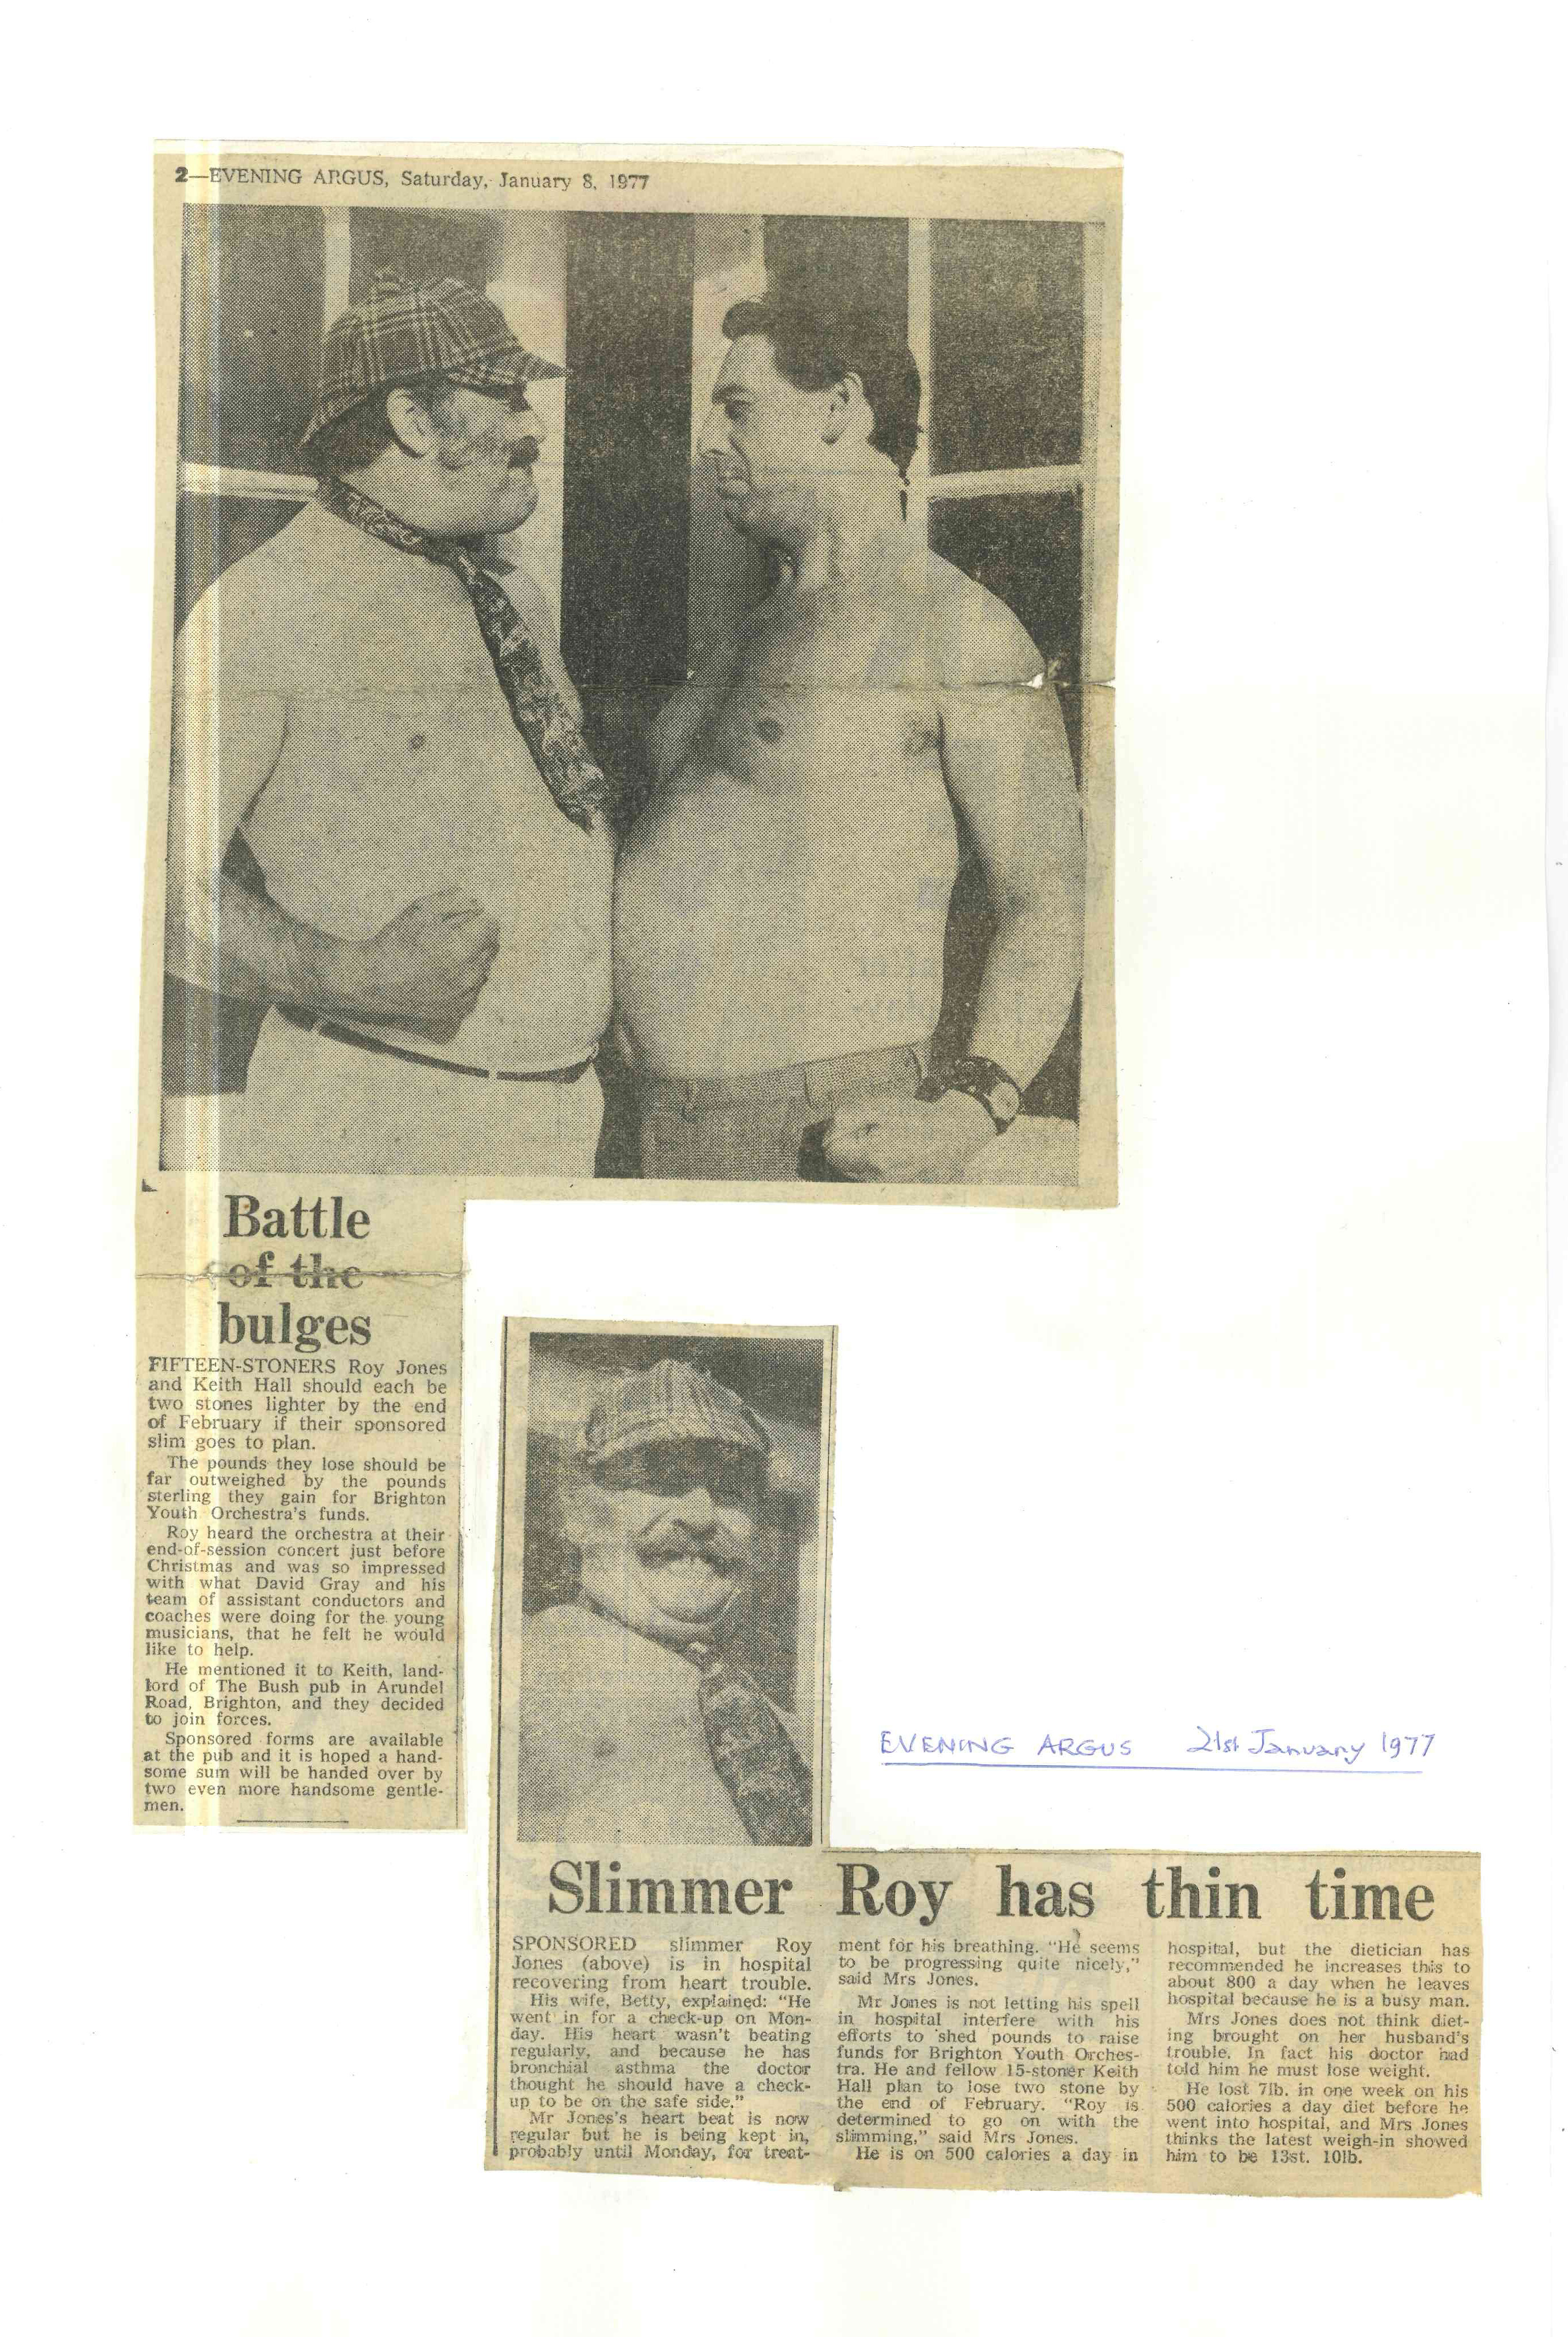 00043-Evening Argus, 21st Janurary 1977.jpg